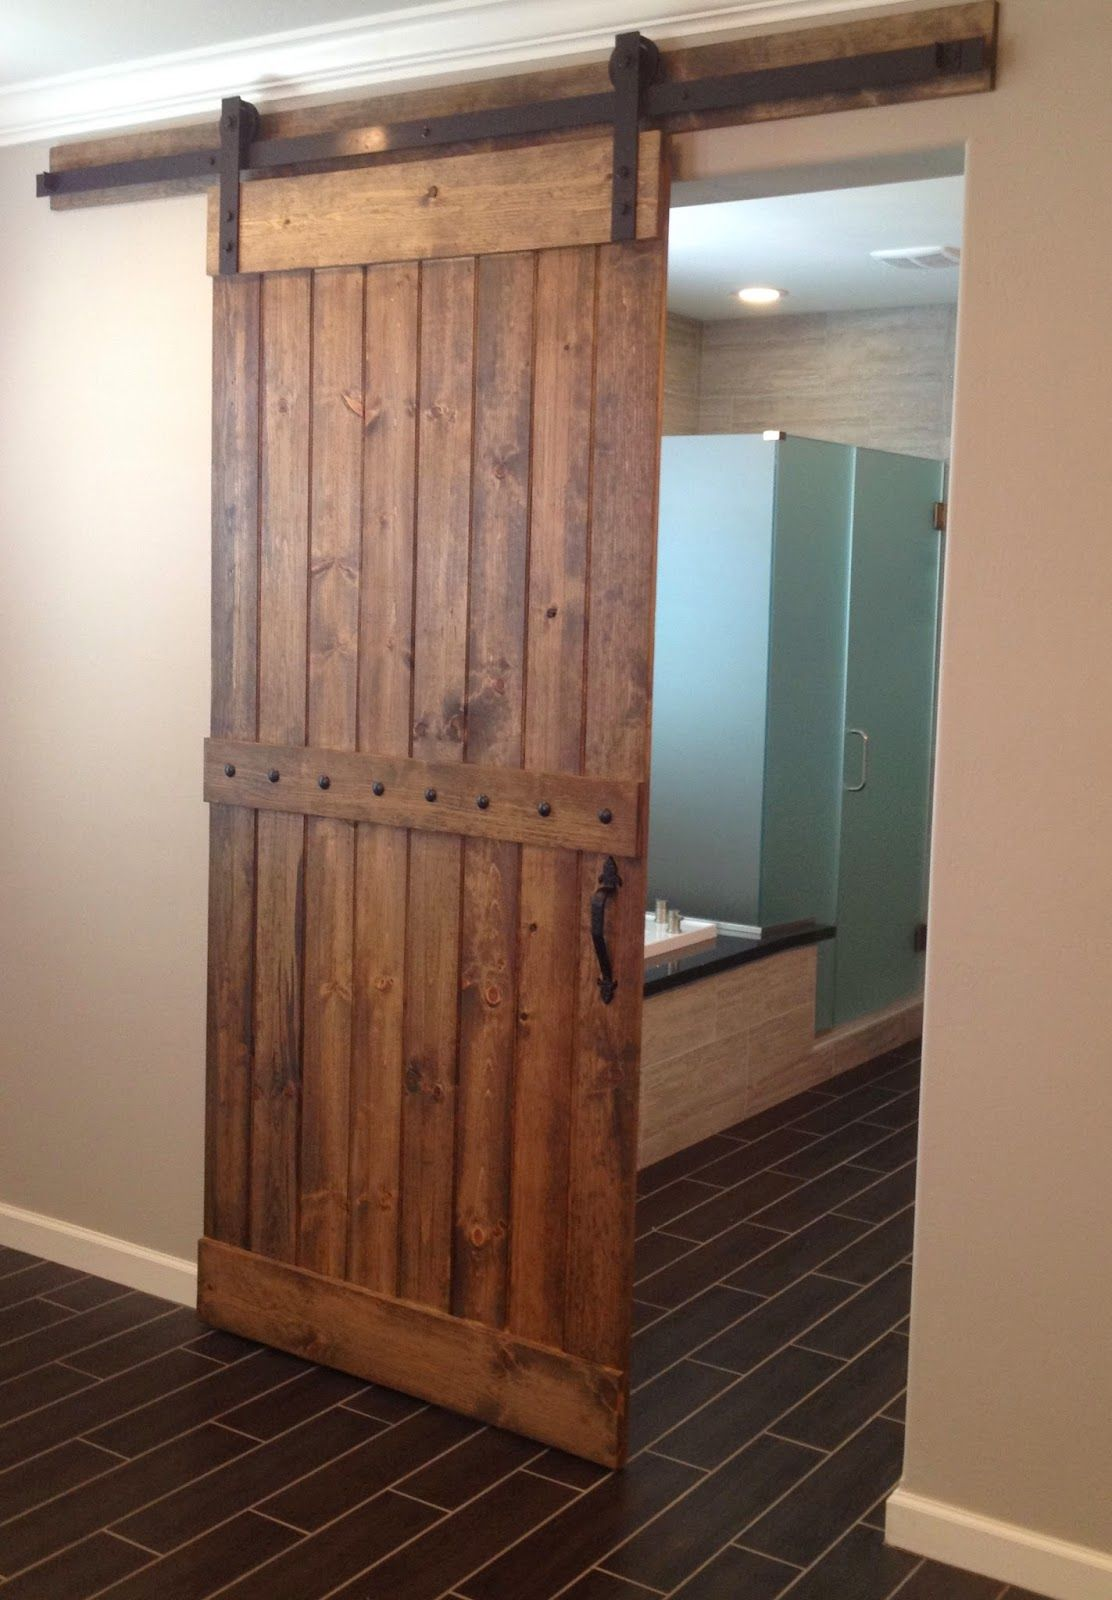 Sliding interior barn doors for sale - Arizona Barn Doors A Sampling Of Our Barn Doors